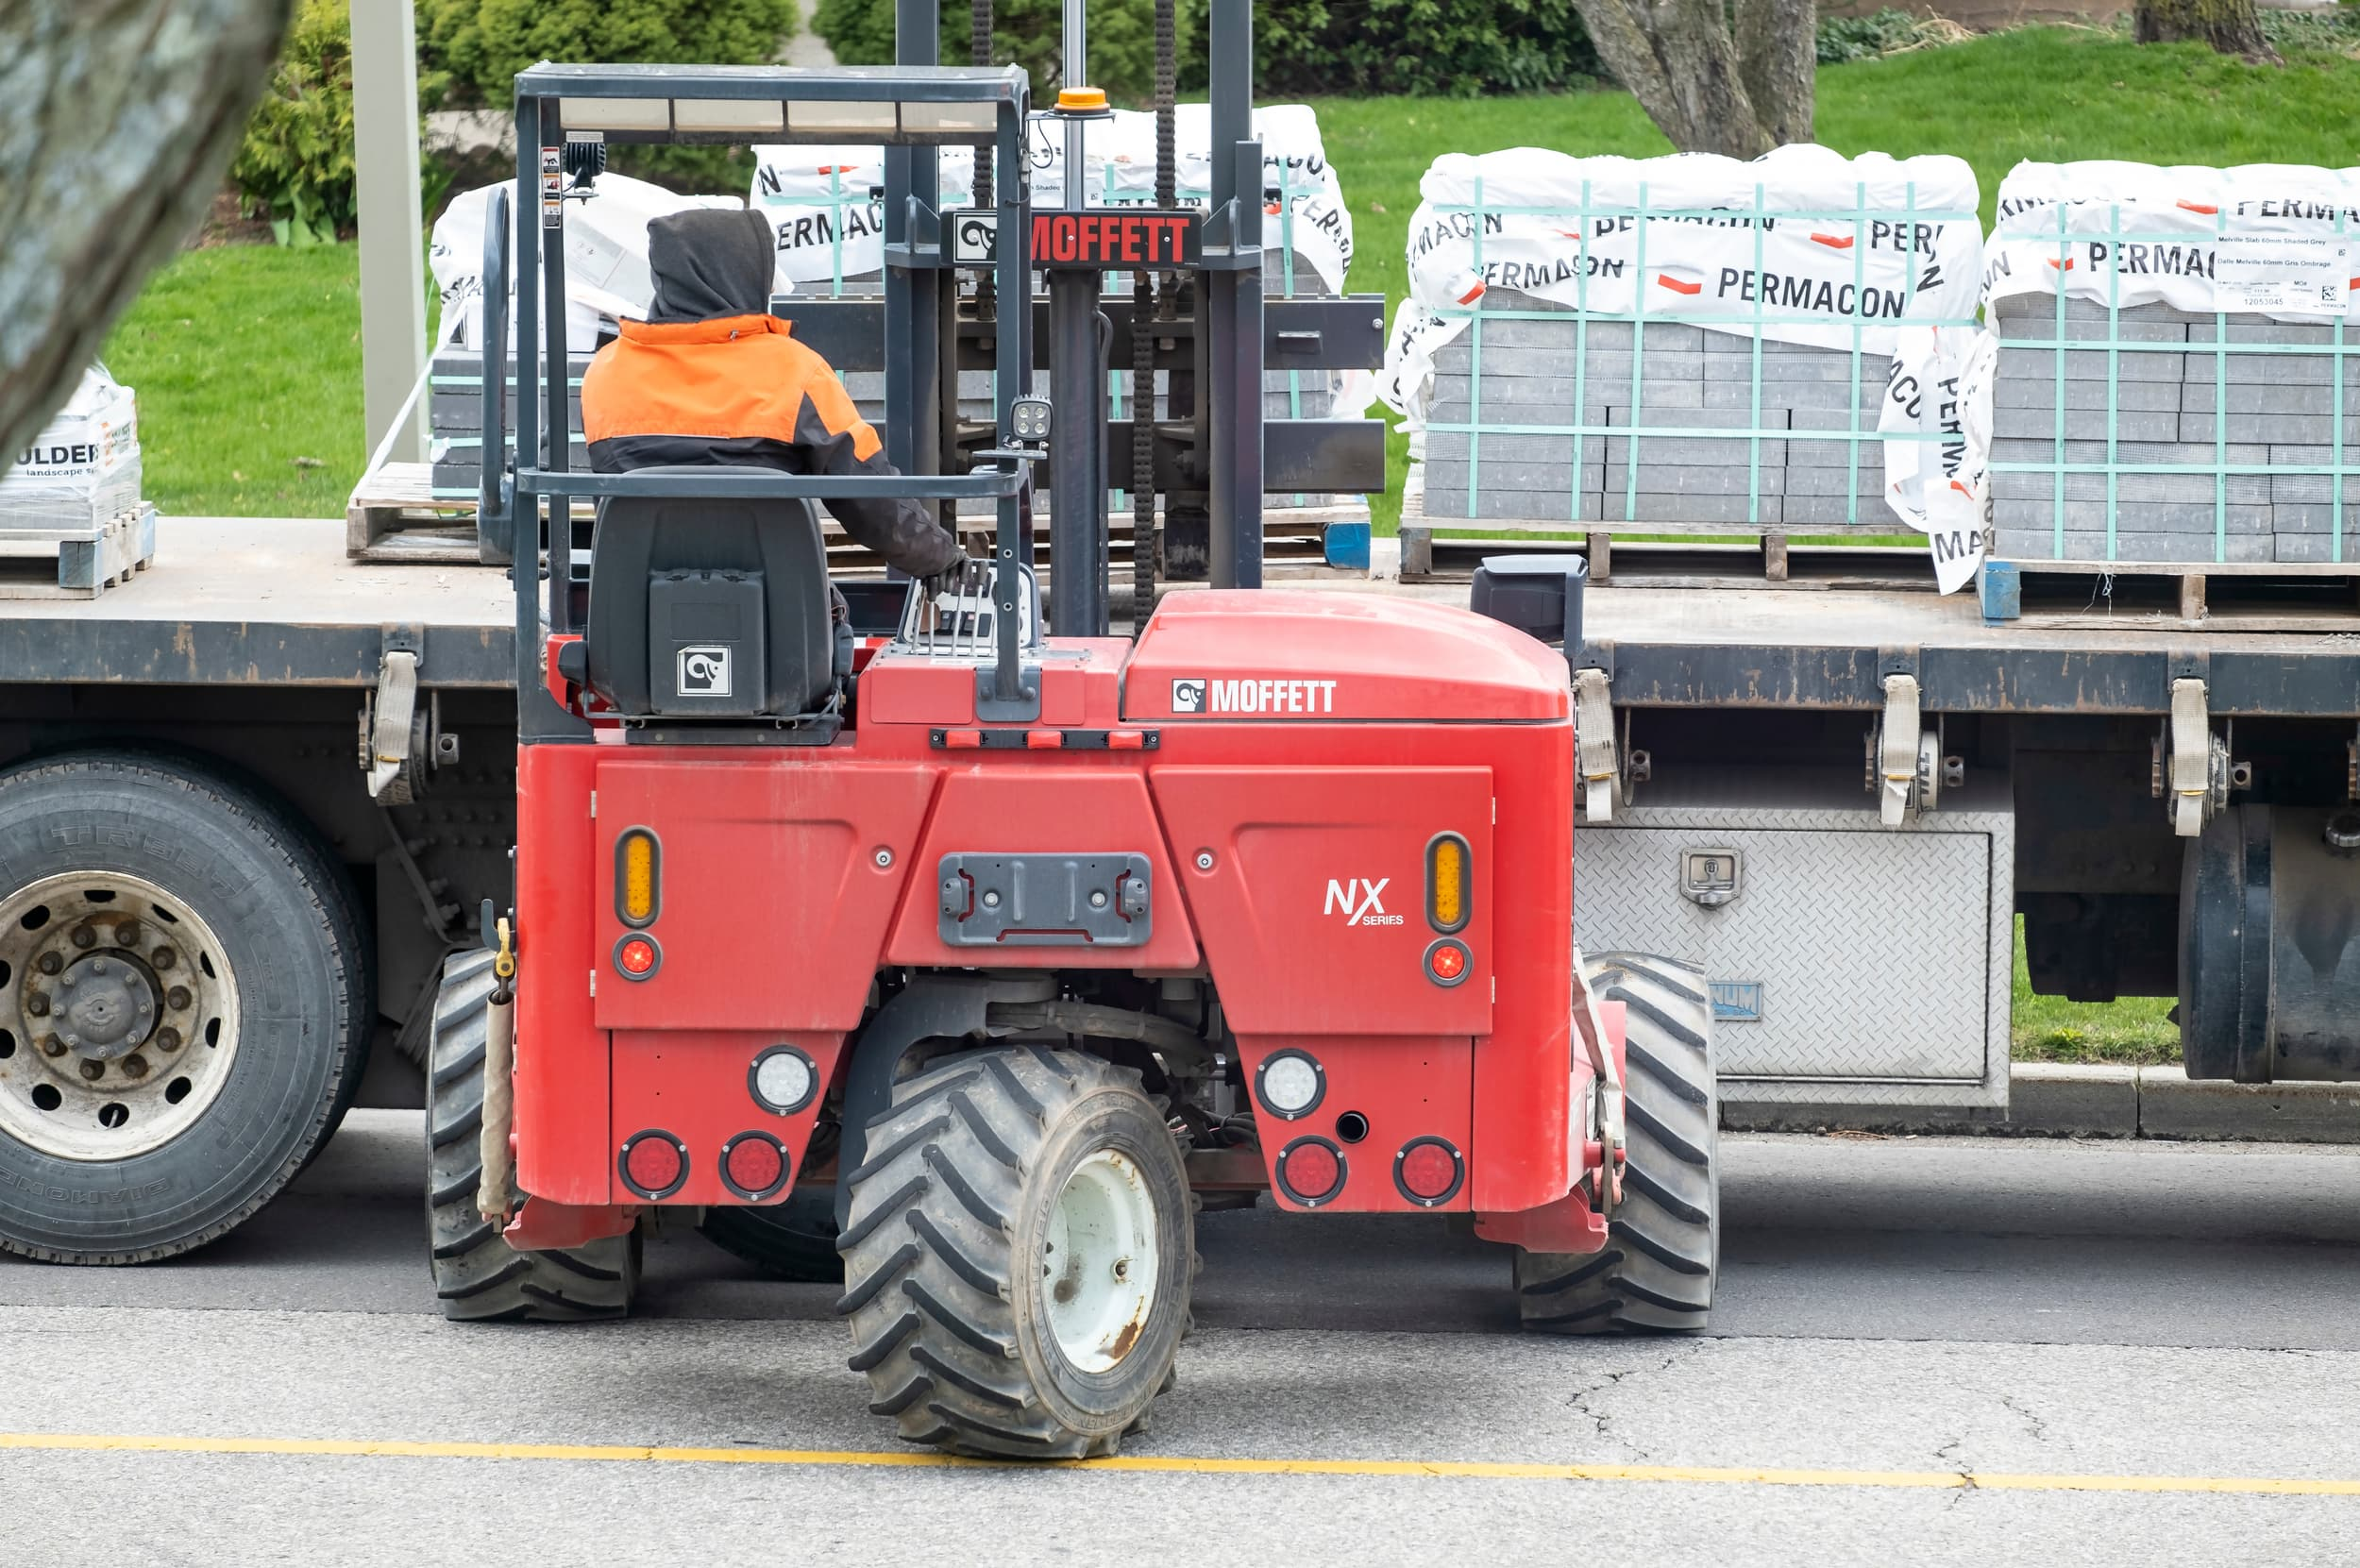 Compliance Training Online Canada Forklift Safety course